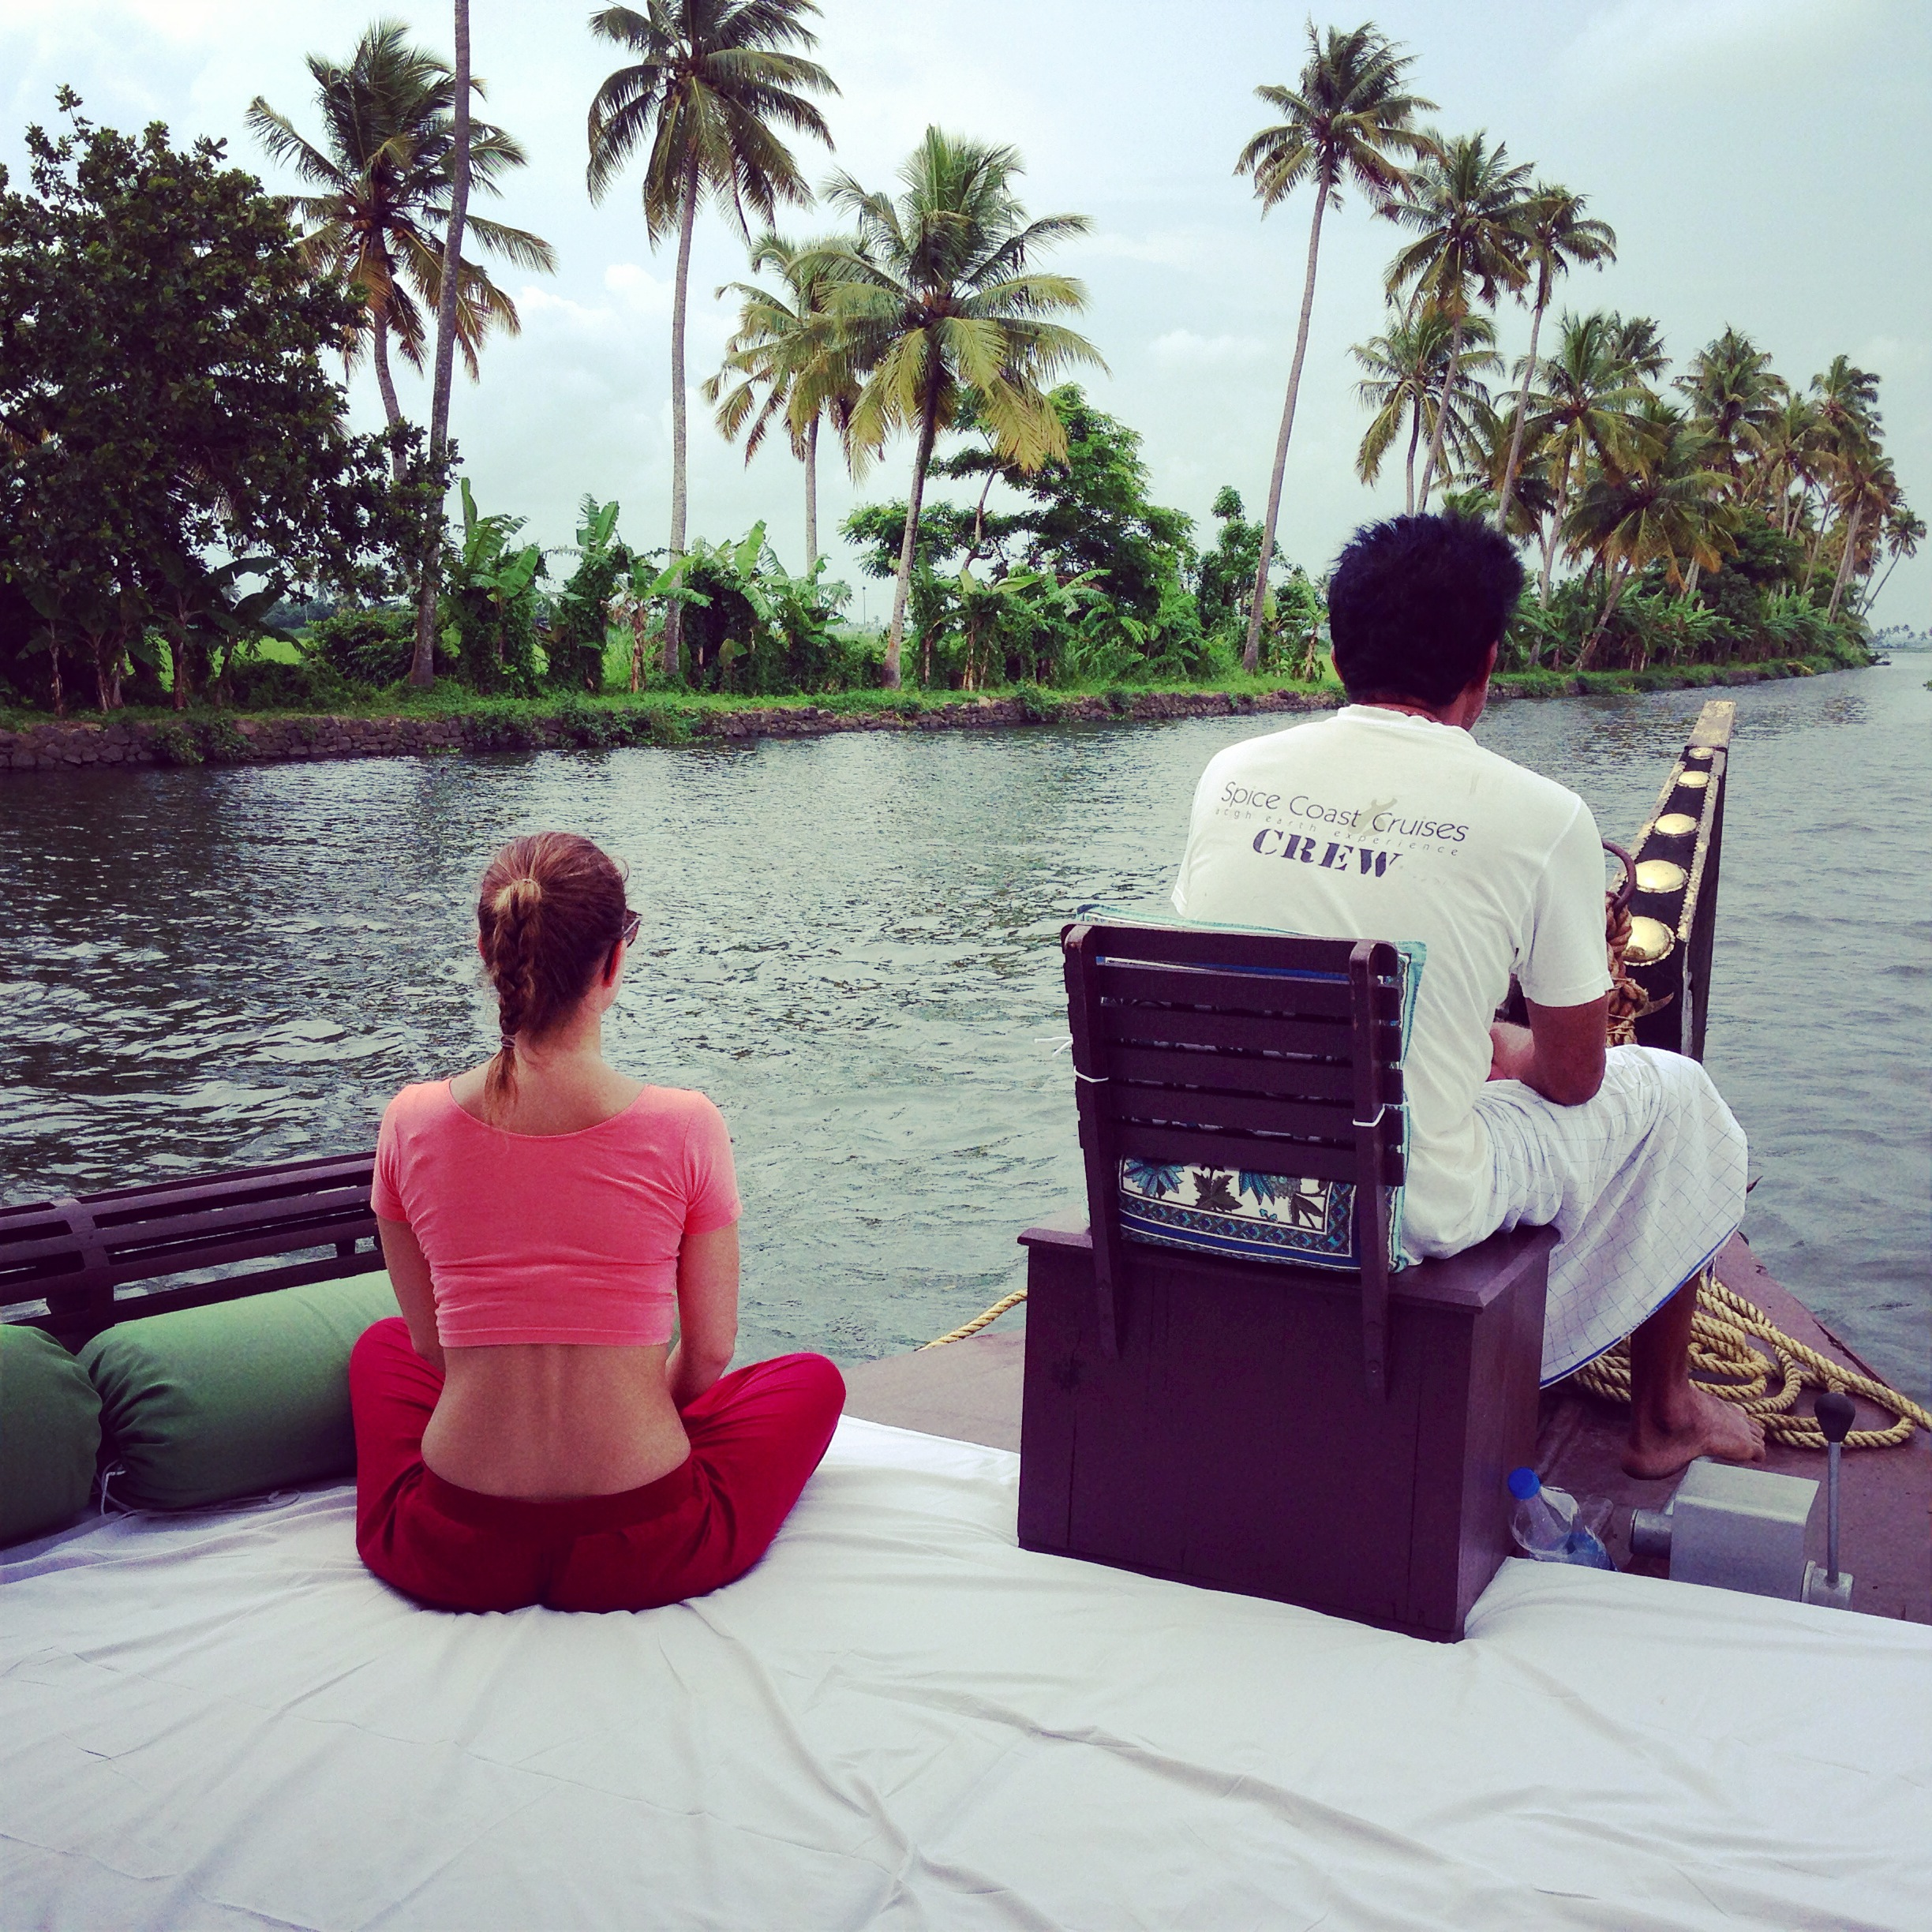 houseboat - alleppey - india - kerala - travel